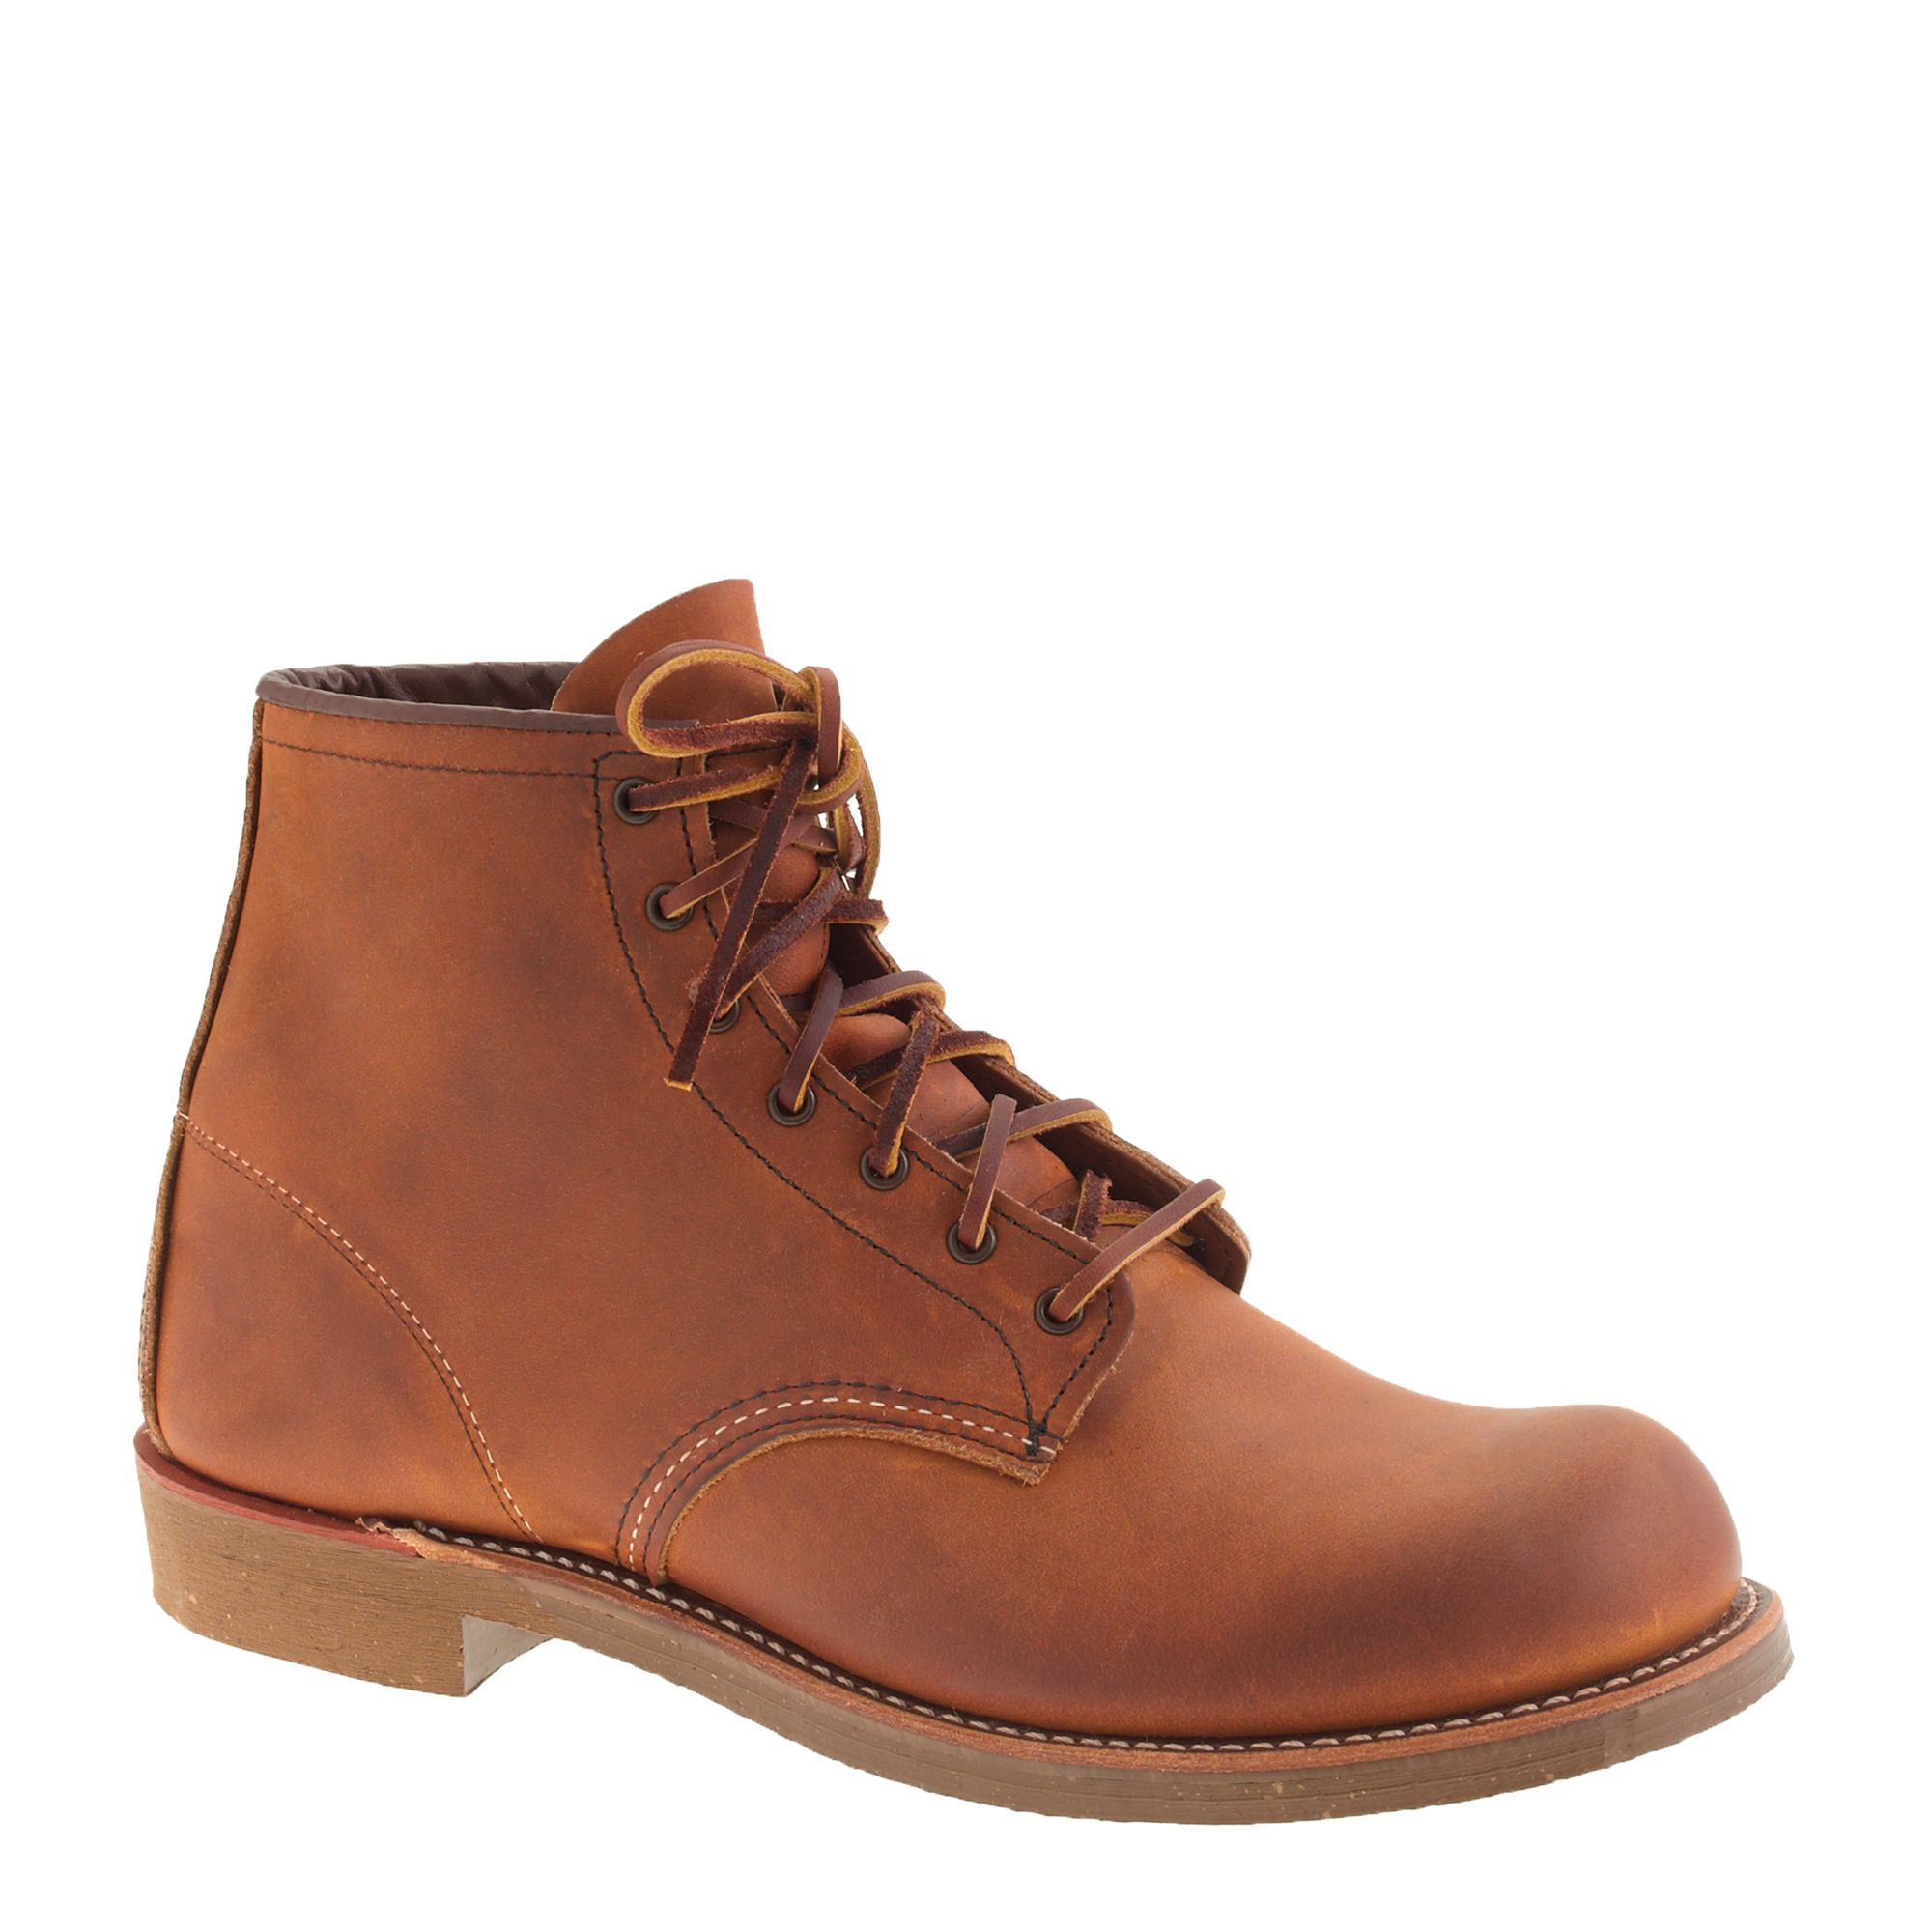 lyst j crew red wing for munson boots in brown for men. Black Bedroom Furniture Sets. Home Design Ideas